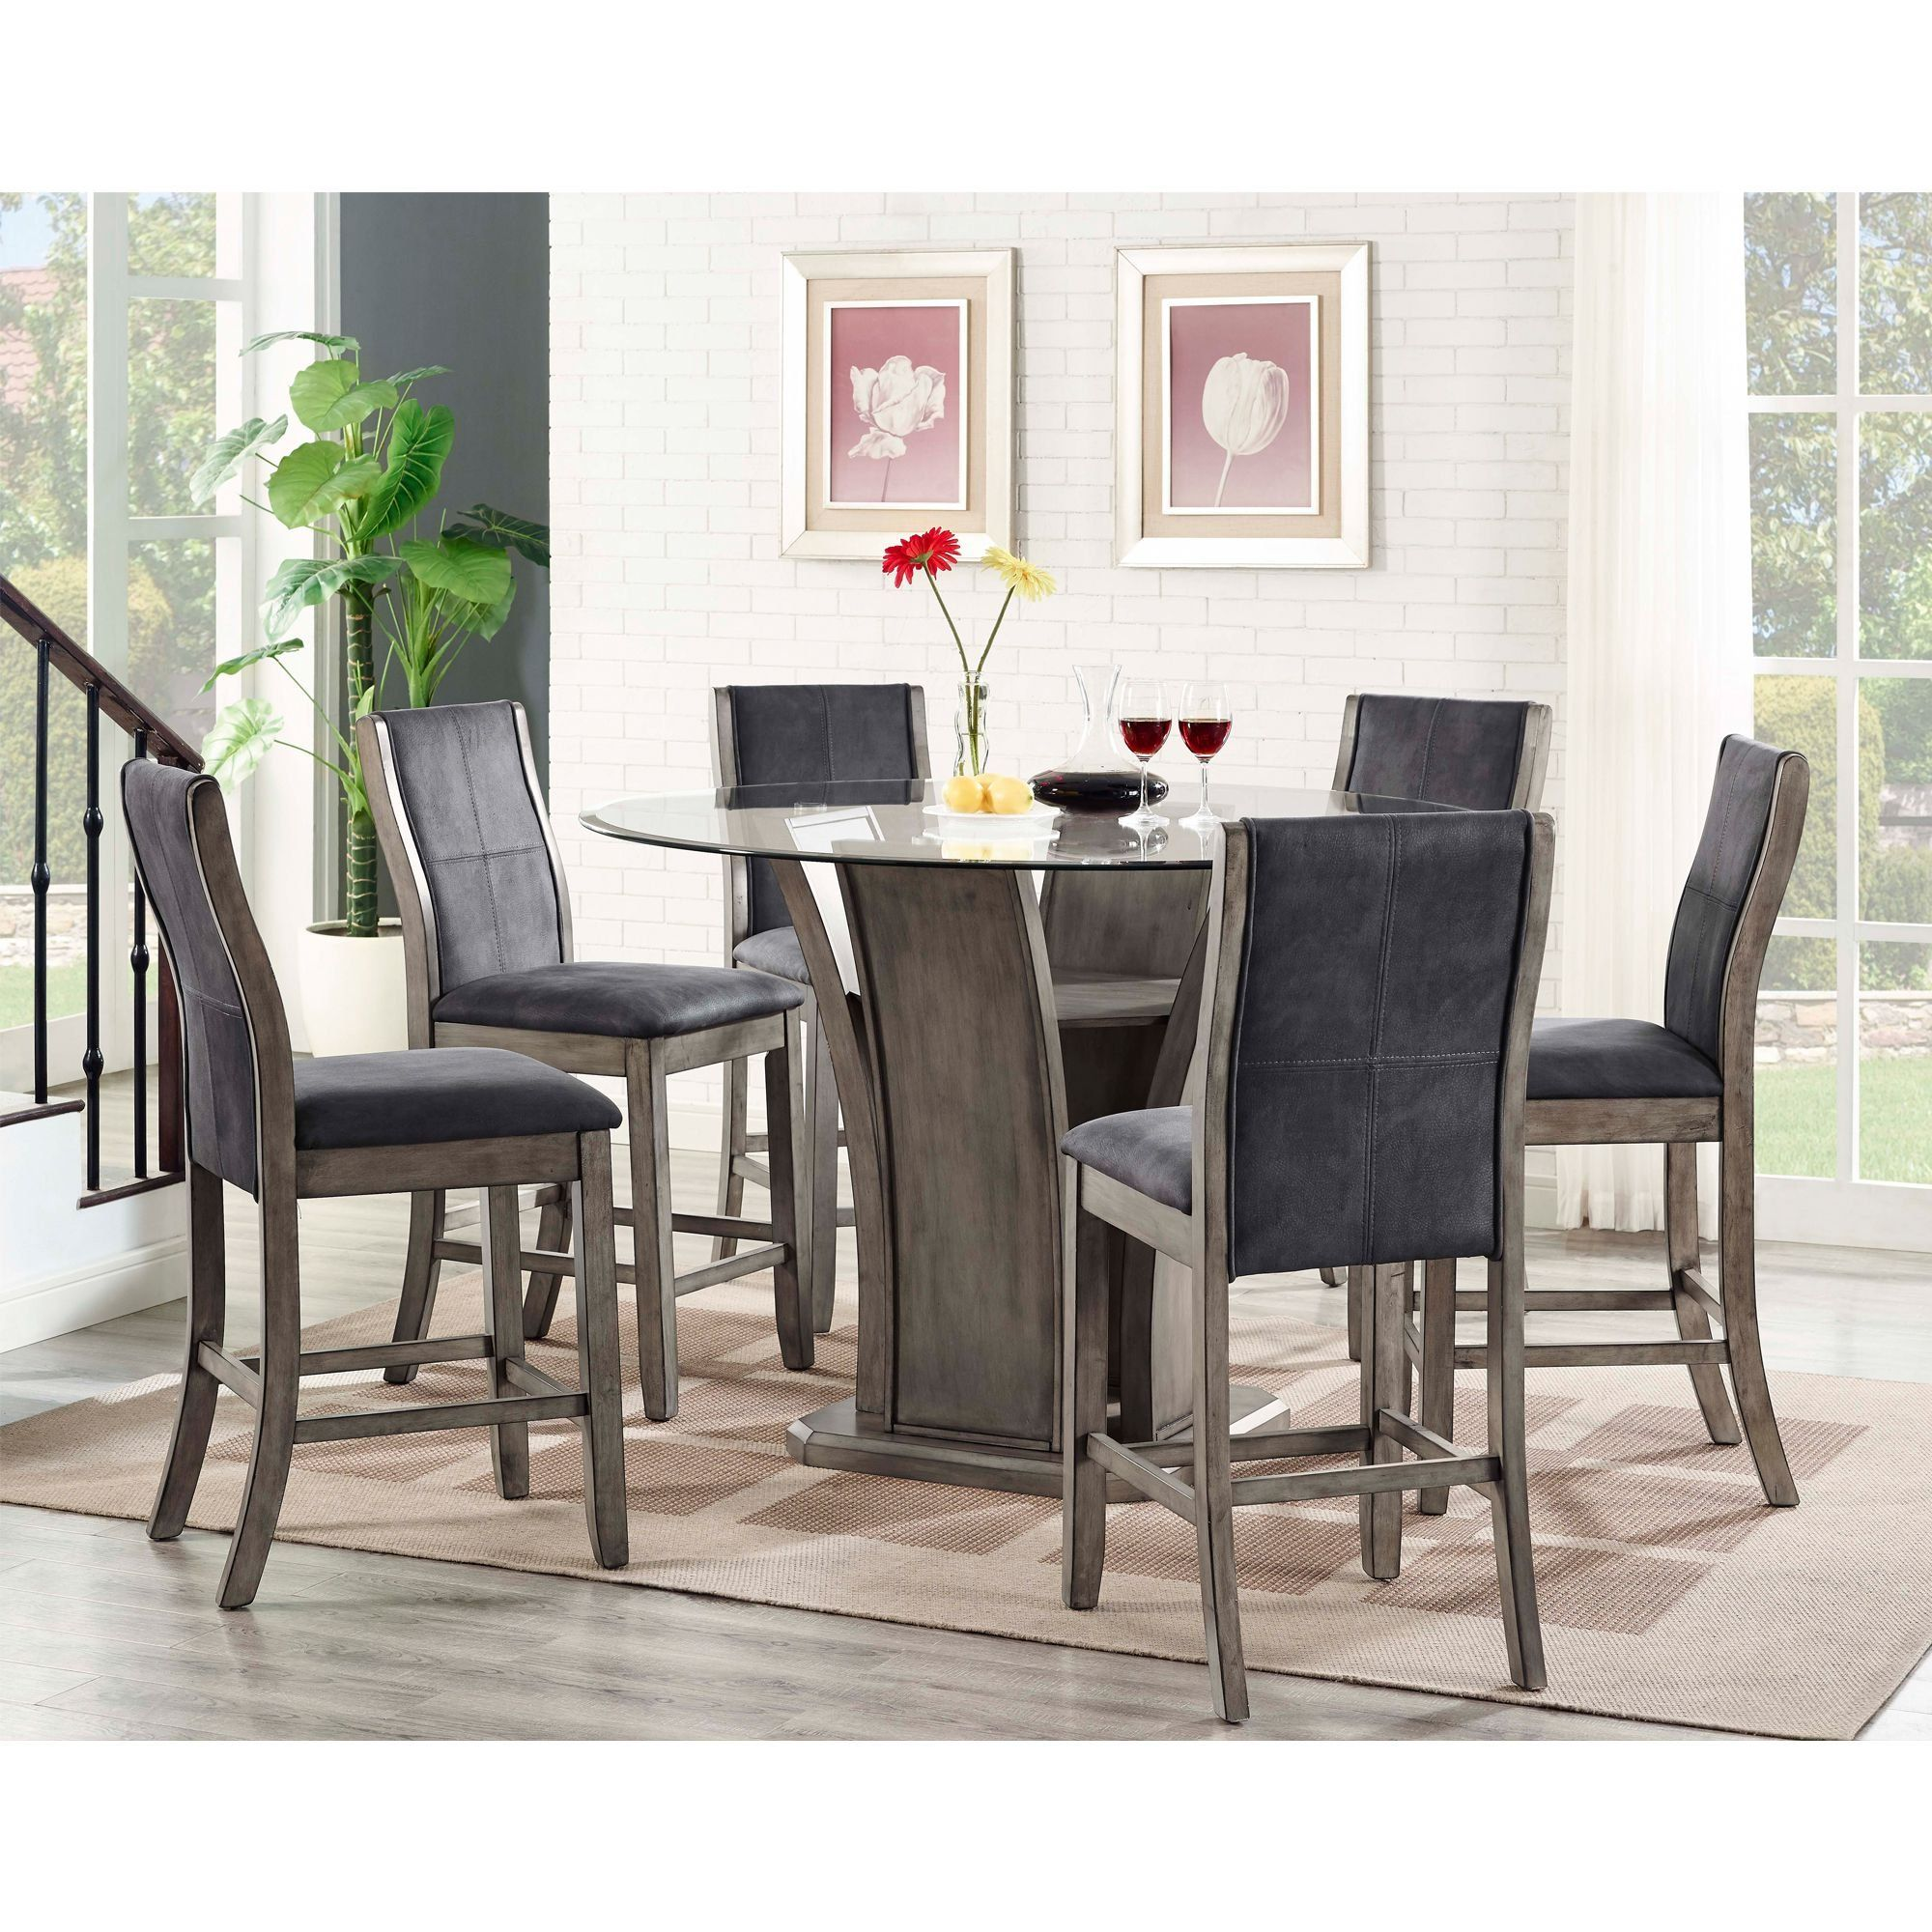 Picket House Furnishings Dylan 7 Piece Round Counter Height Dining